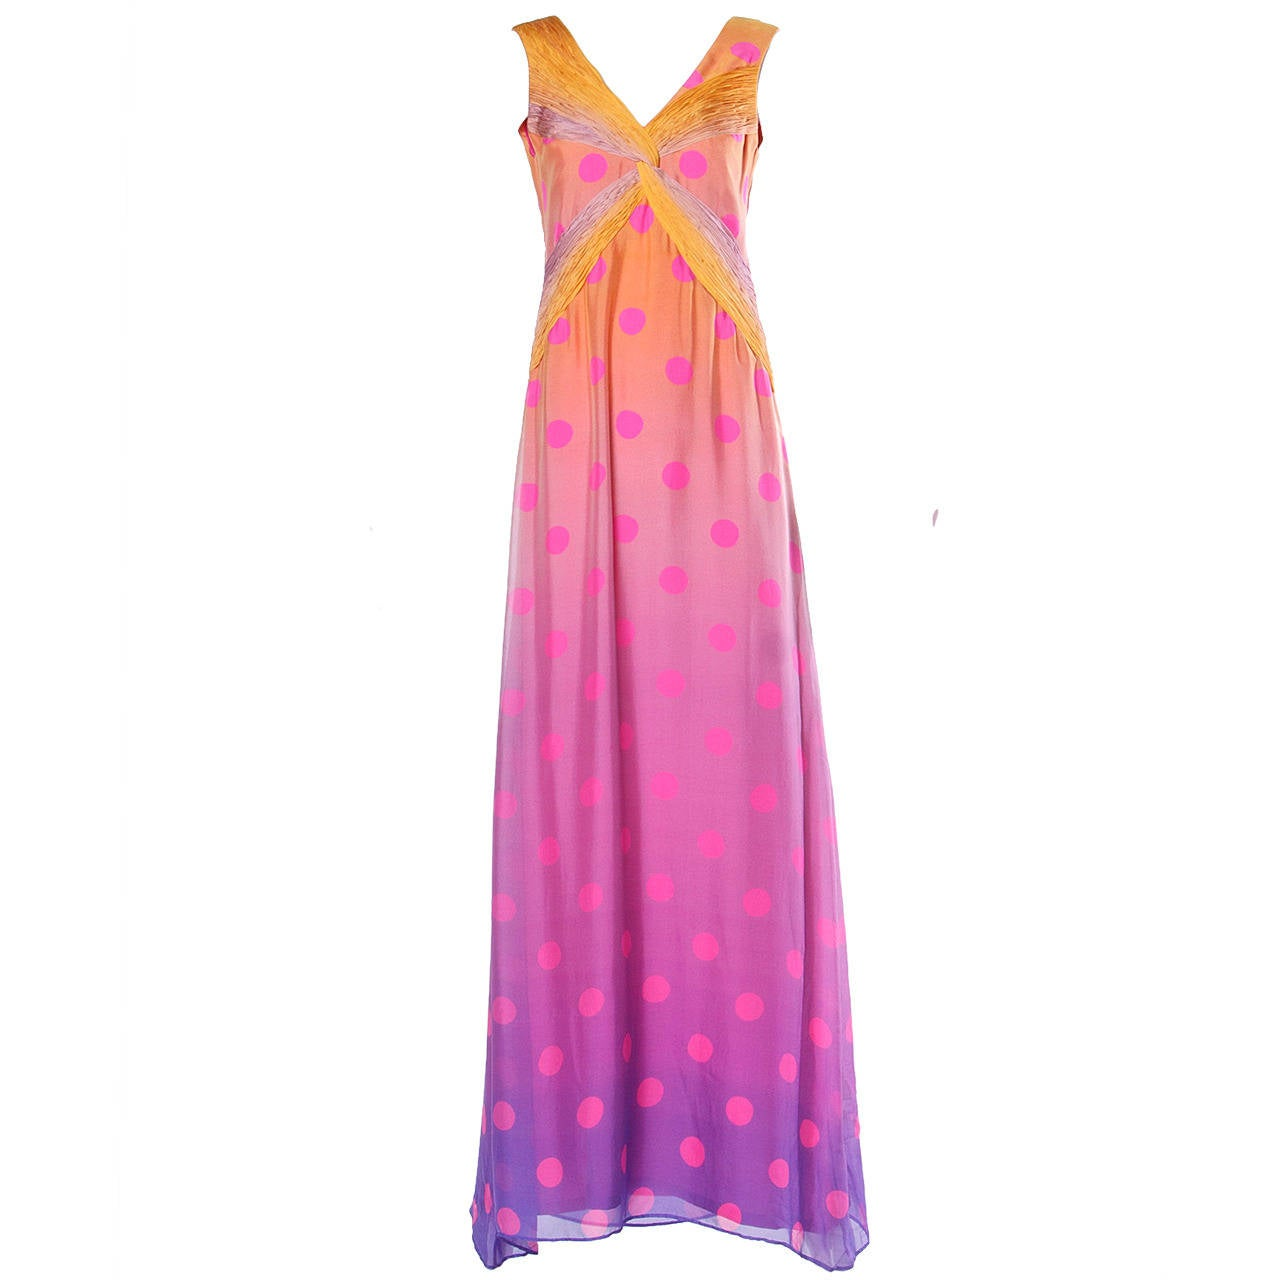 Andre Laug Numbered Couture Vintage Ombre Silk Polka Dots Maxi Dress